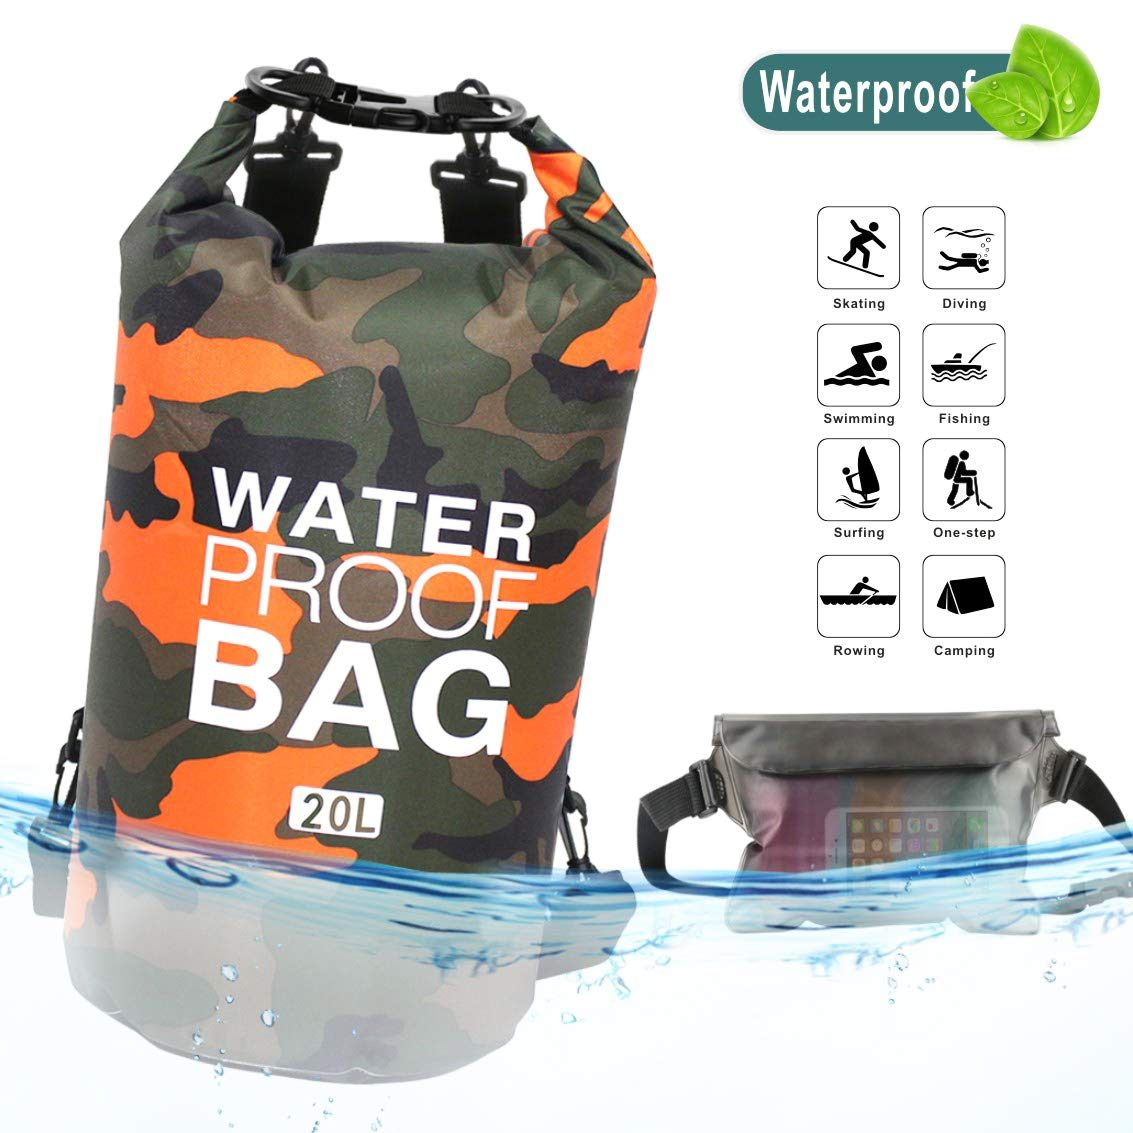 Boating Unigear Dry Bag Waterproof Fishing Swimming and Camping with Waterproof Phone Case Floating and Lightweight Bags for Kayaking